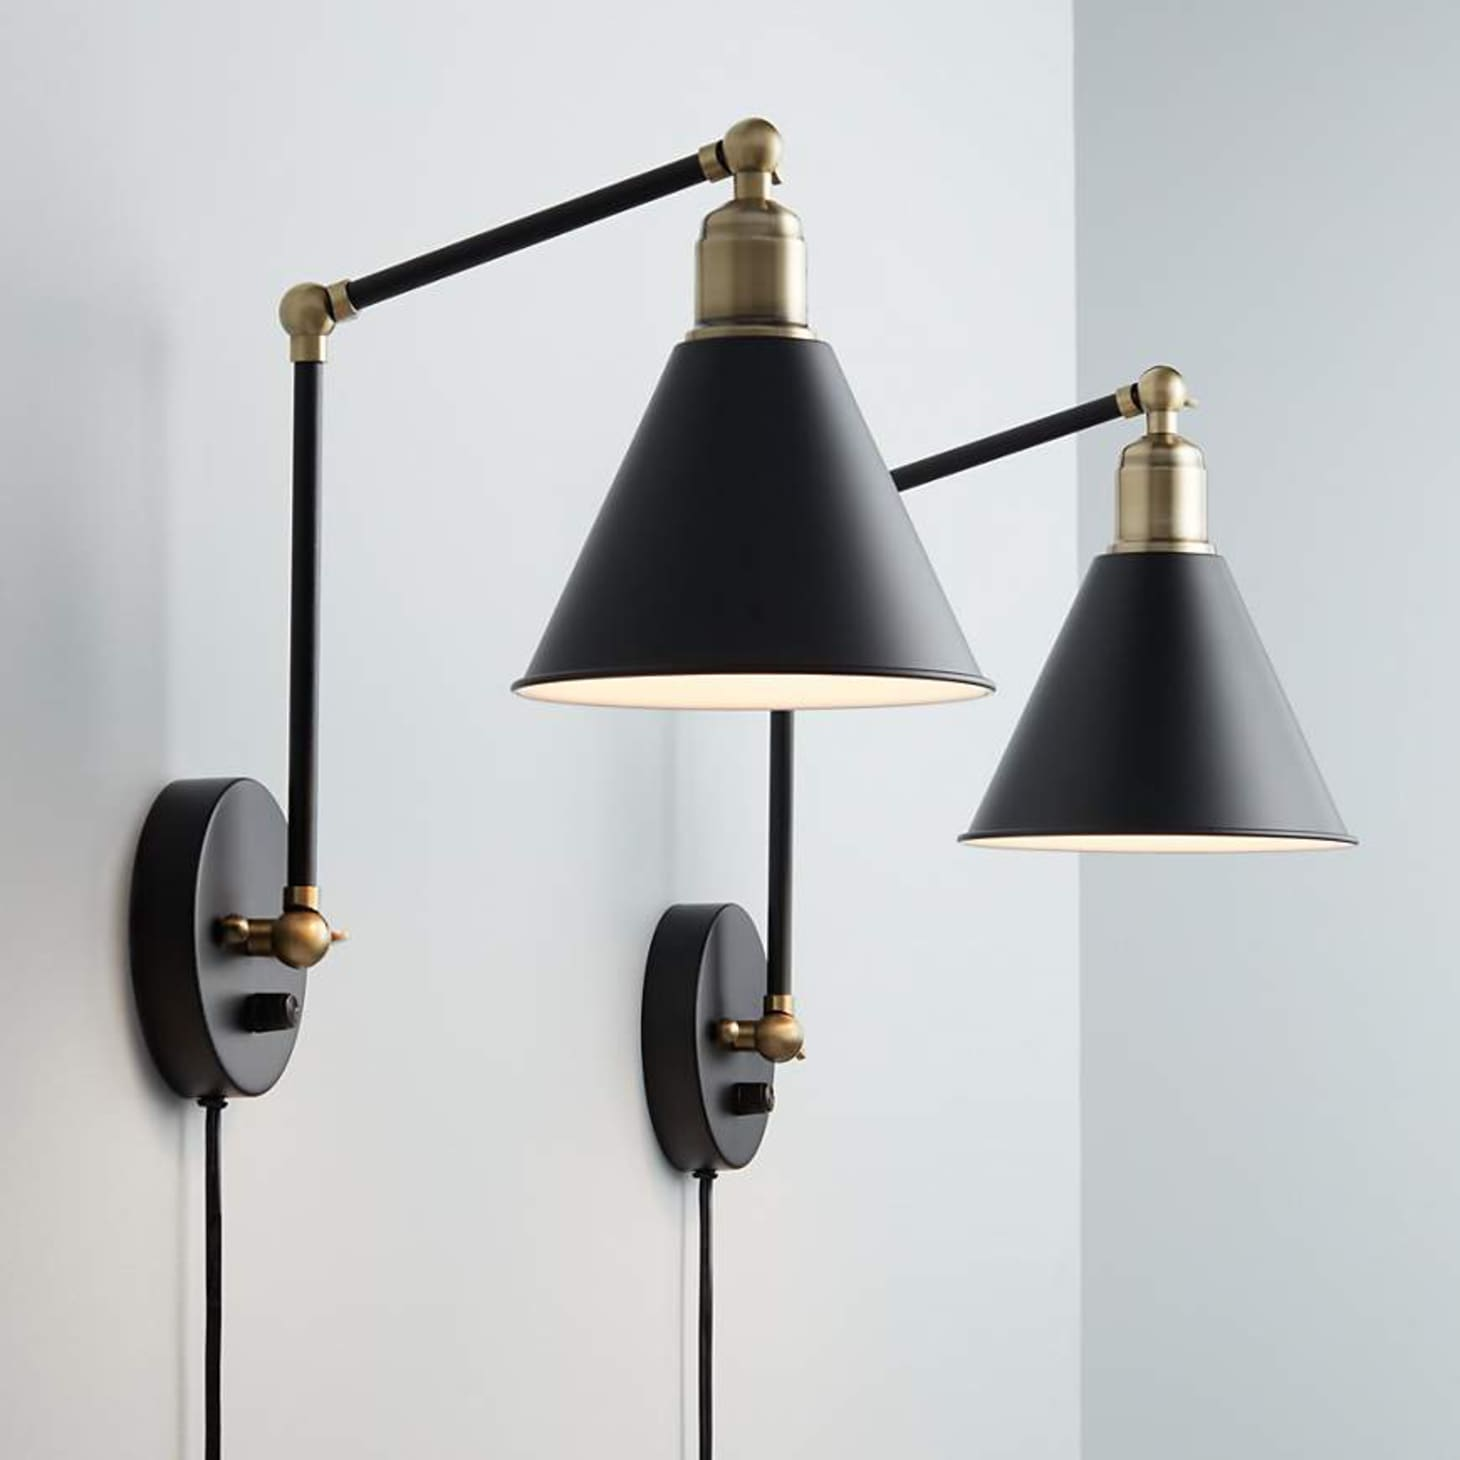 Retro Adjustable Plug In Wall Sconce Lamp with Cord and Plug Bronze Wall Lights